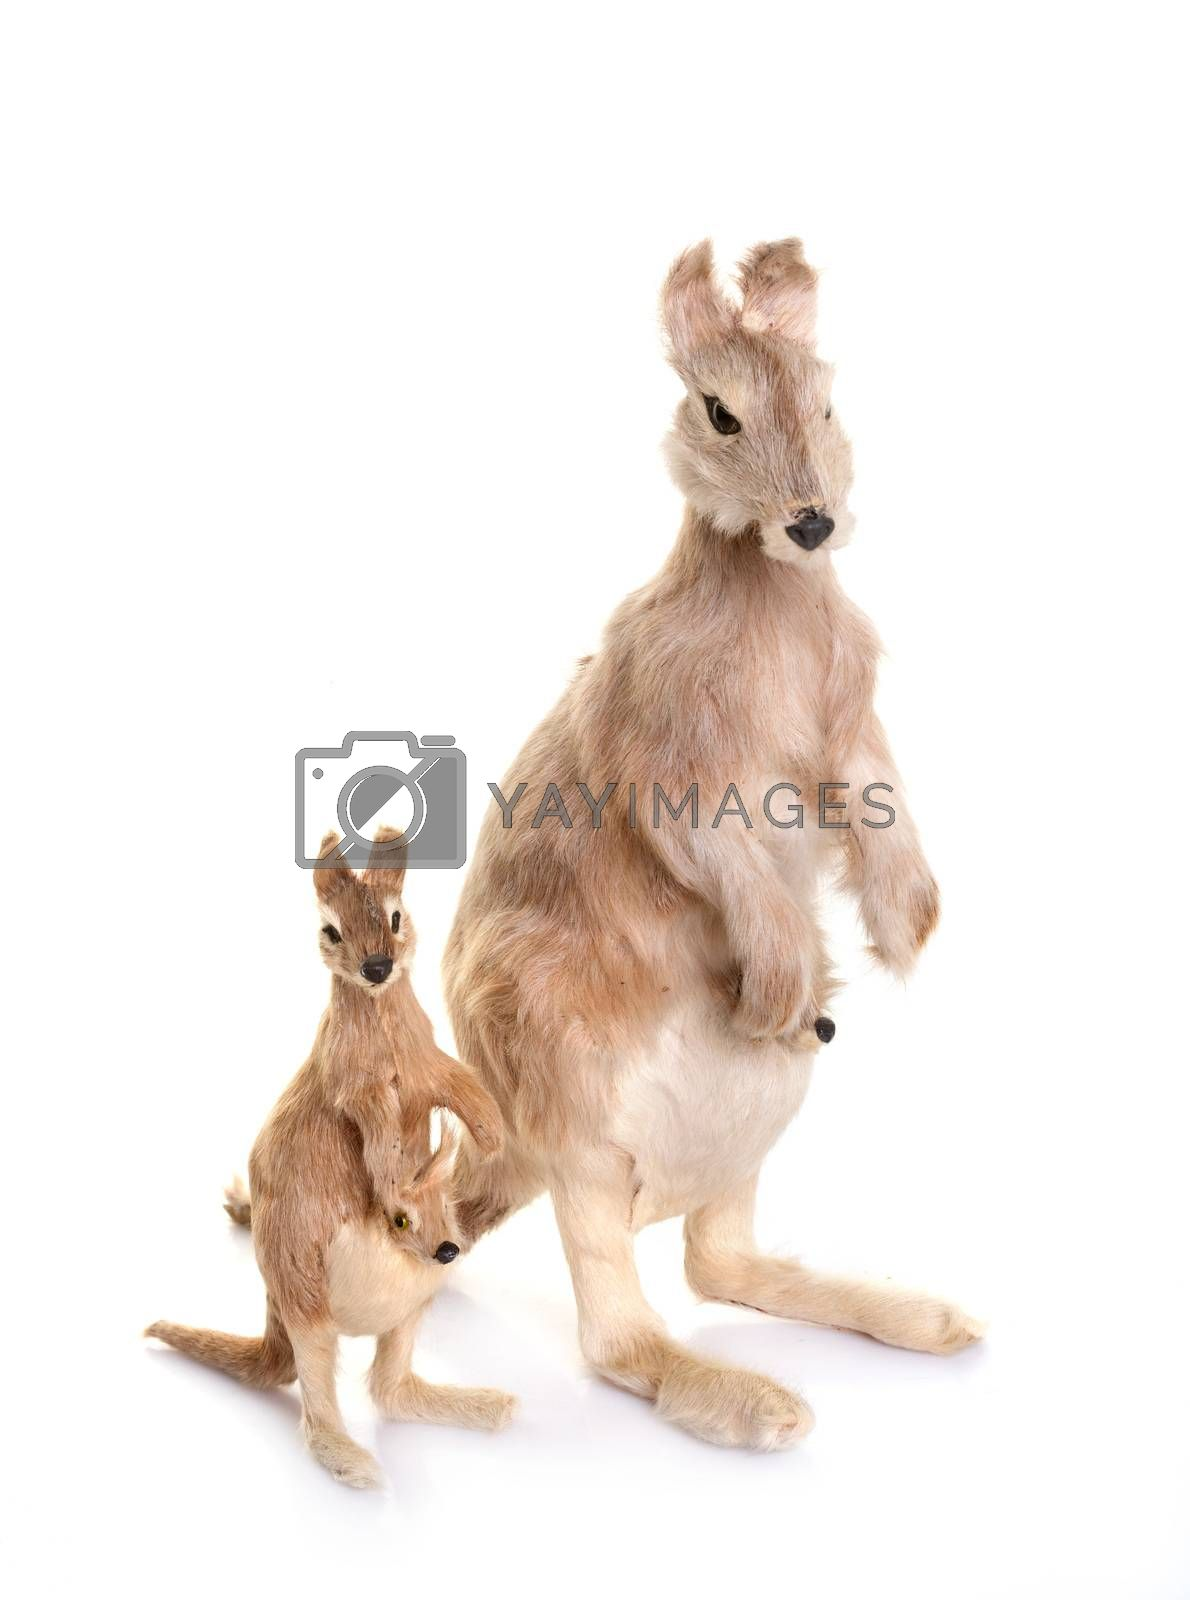 animal trinket in front of white background